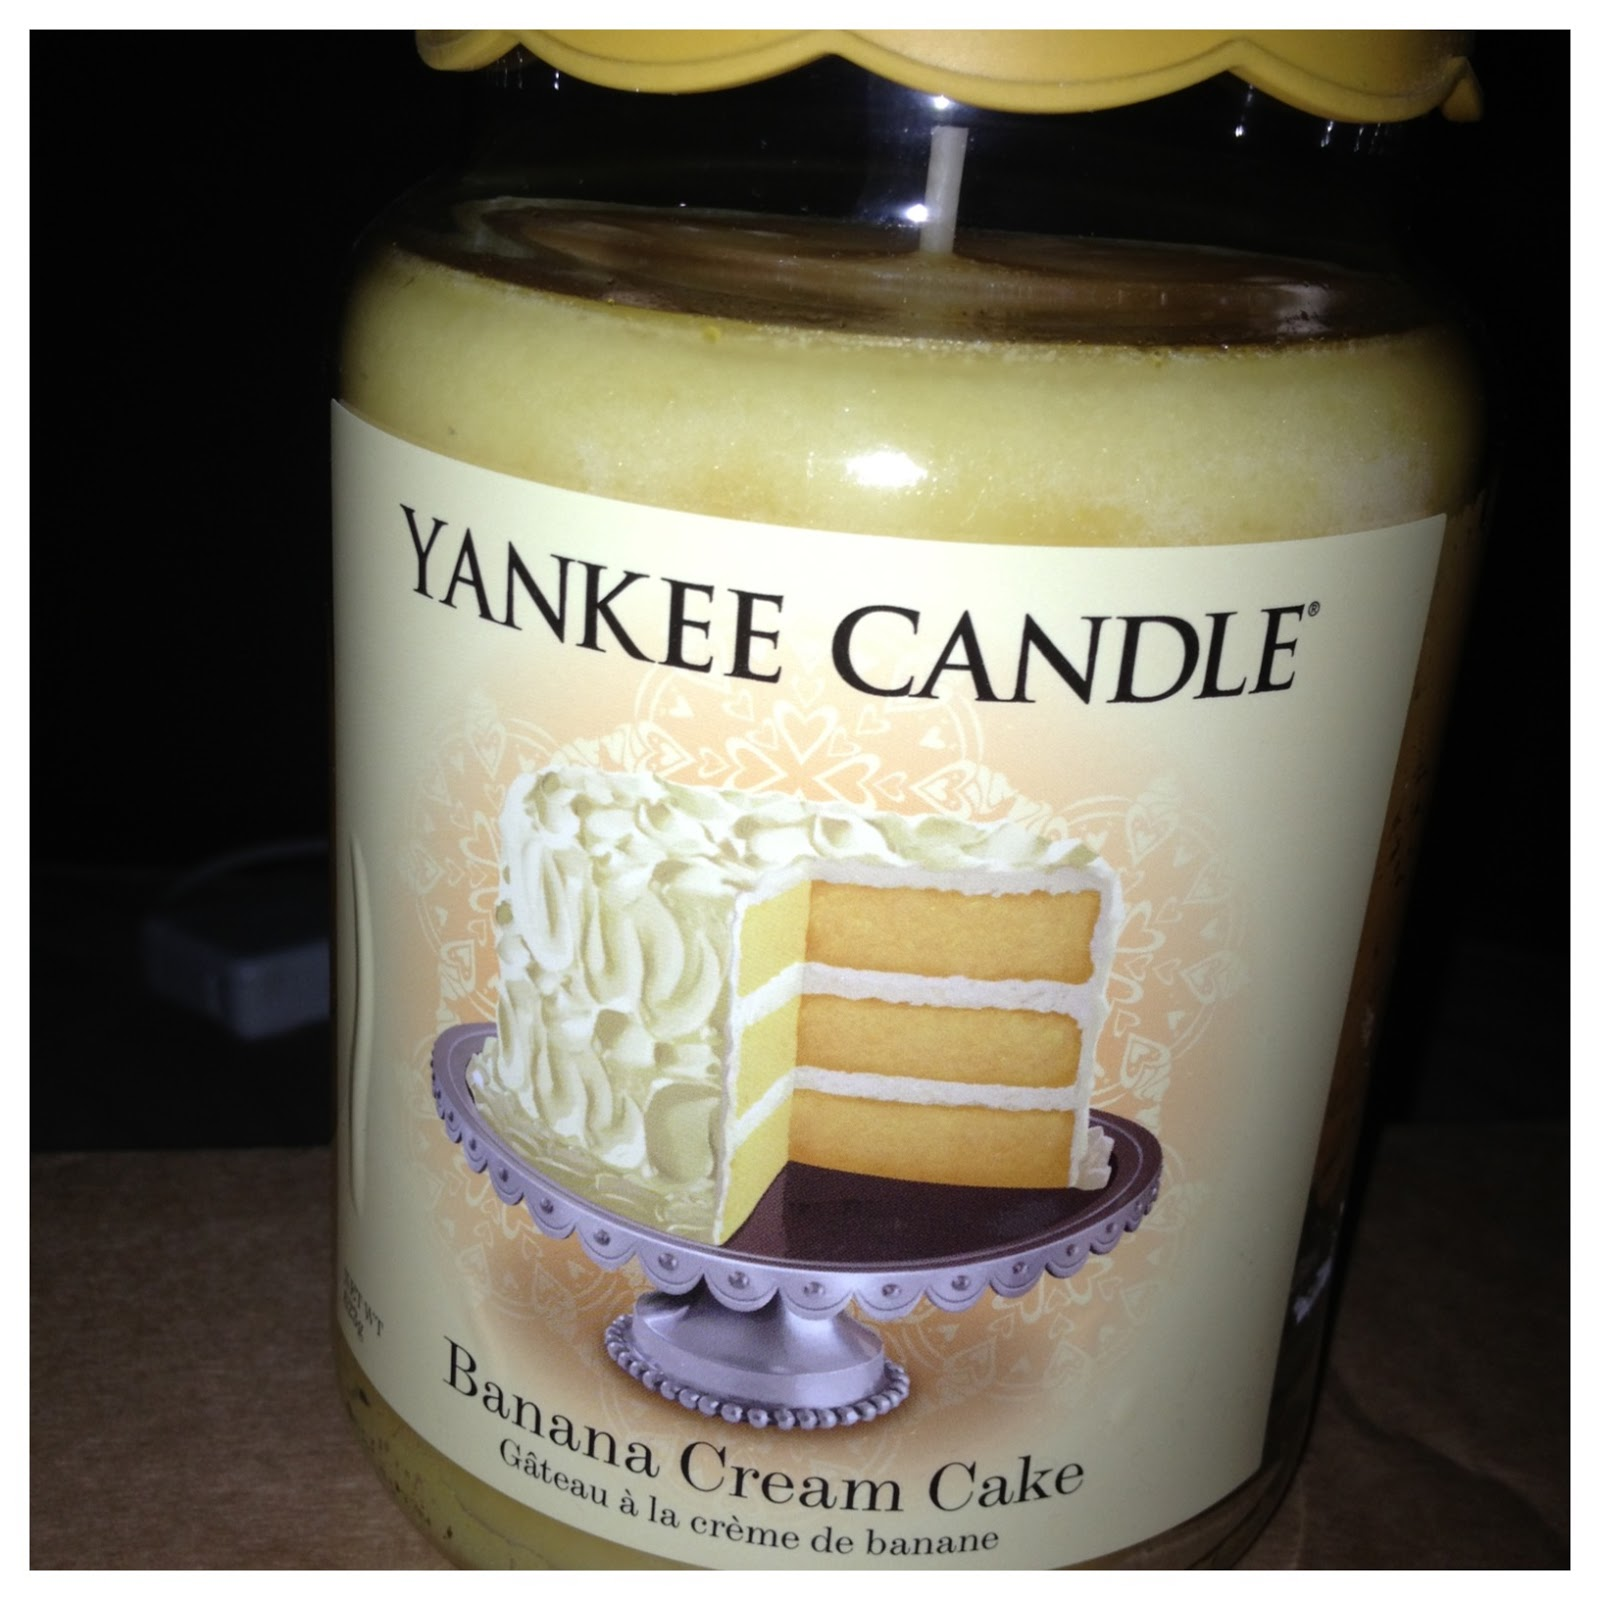 What Does Bunny Cake Yankee Candle Smell Like